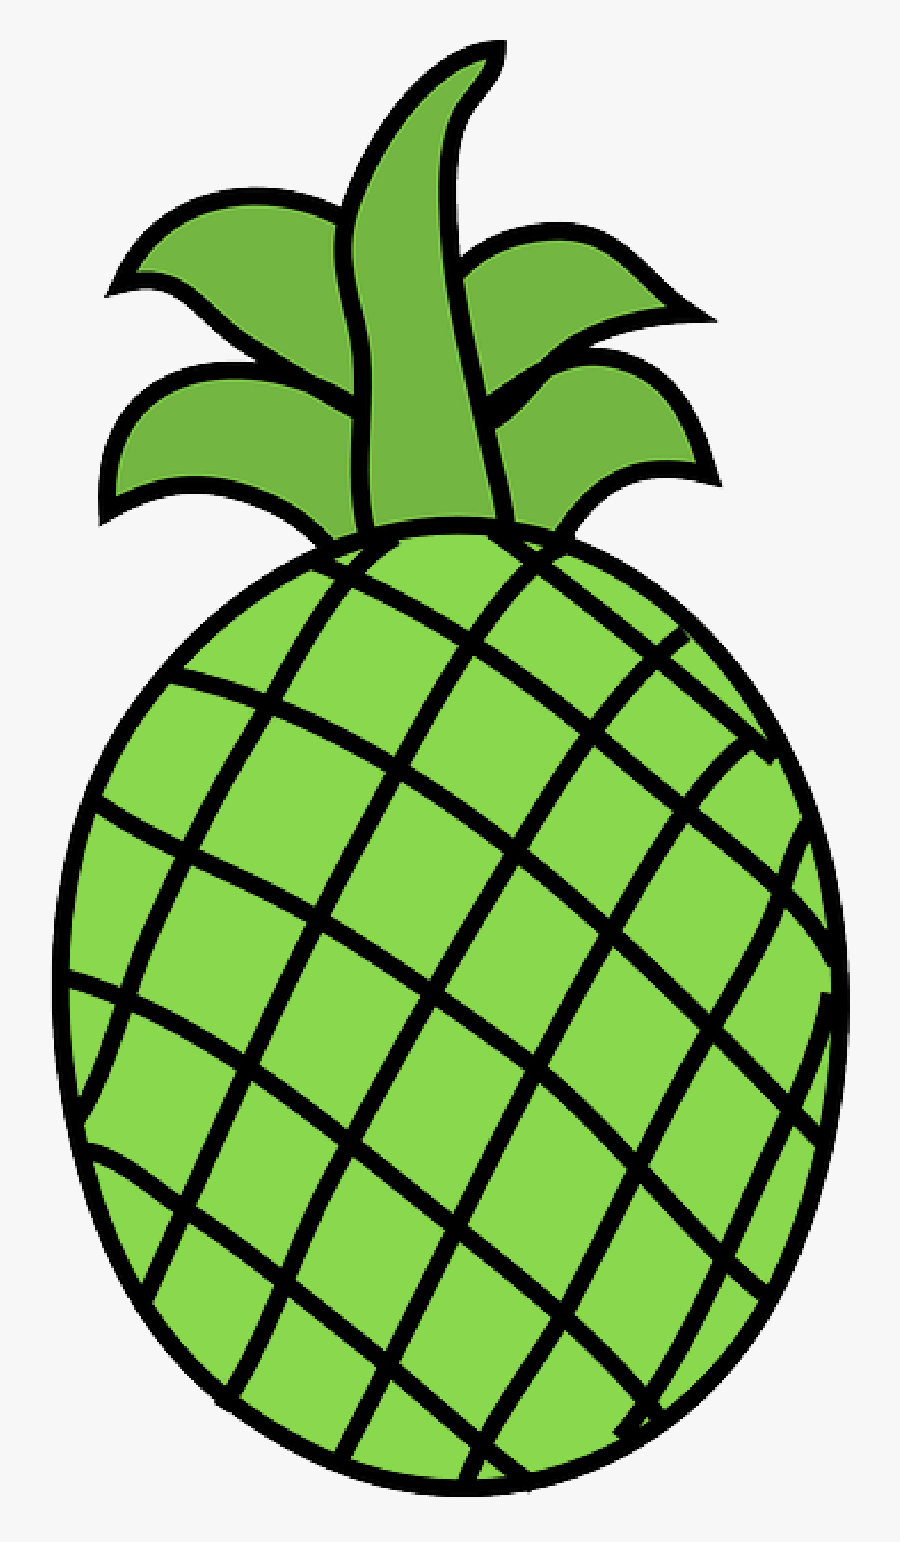 Free Pictures Pineapple - Clip Art Fruits Black And White, Transparent Clipart